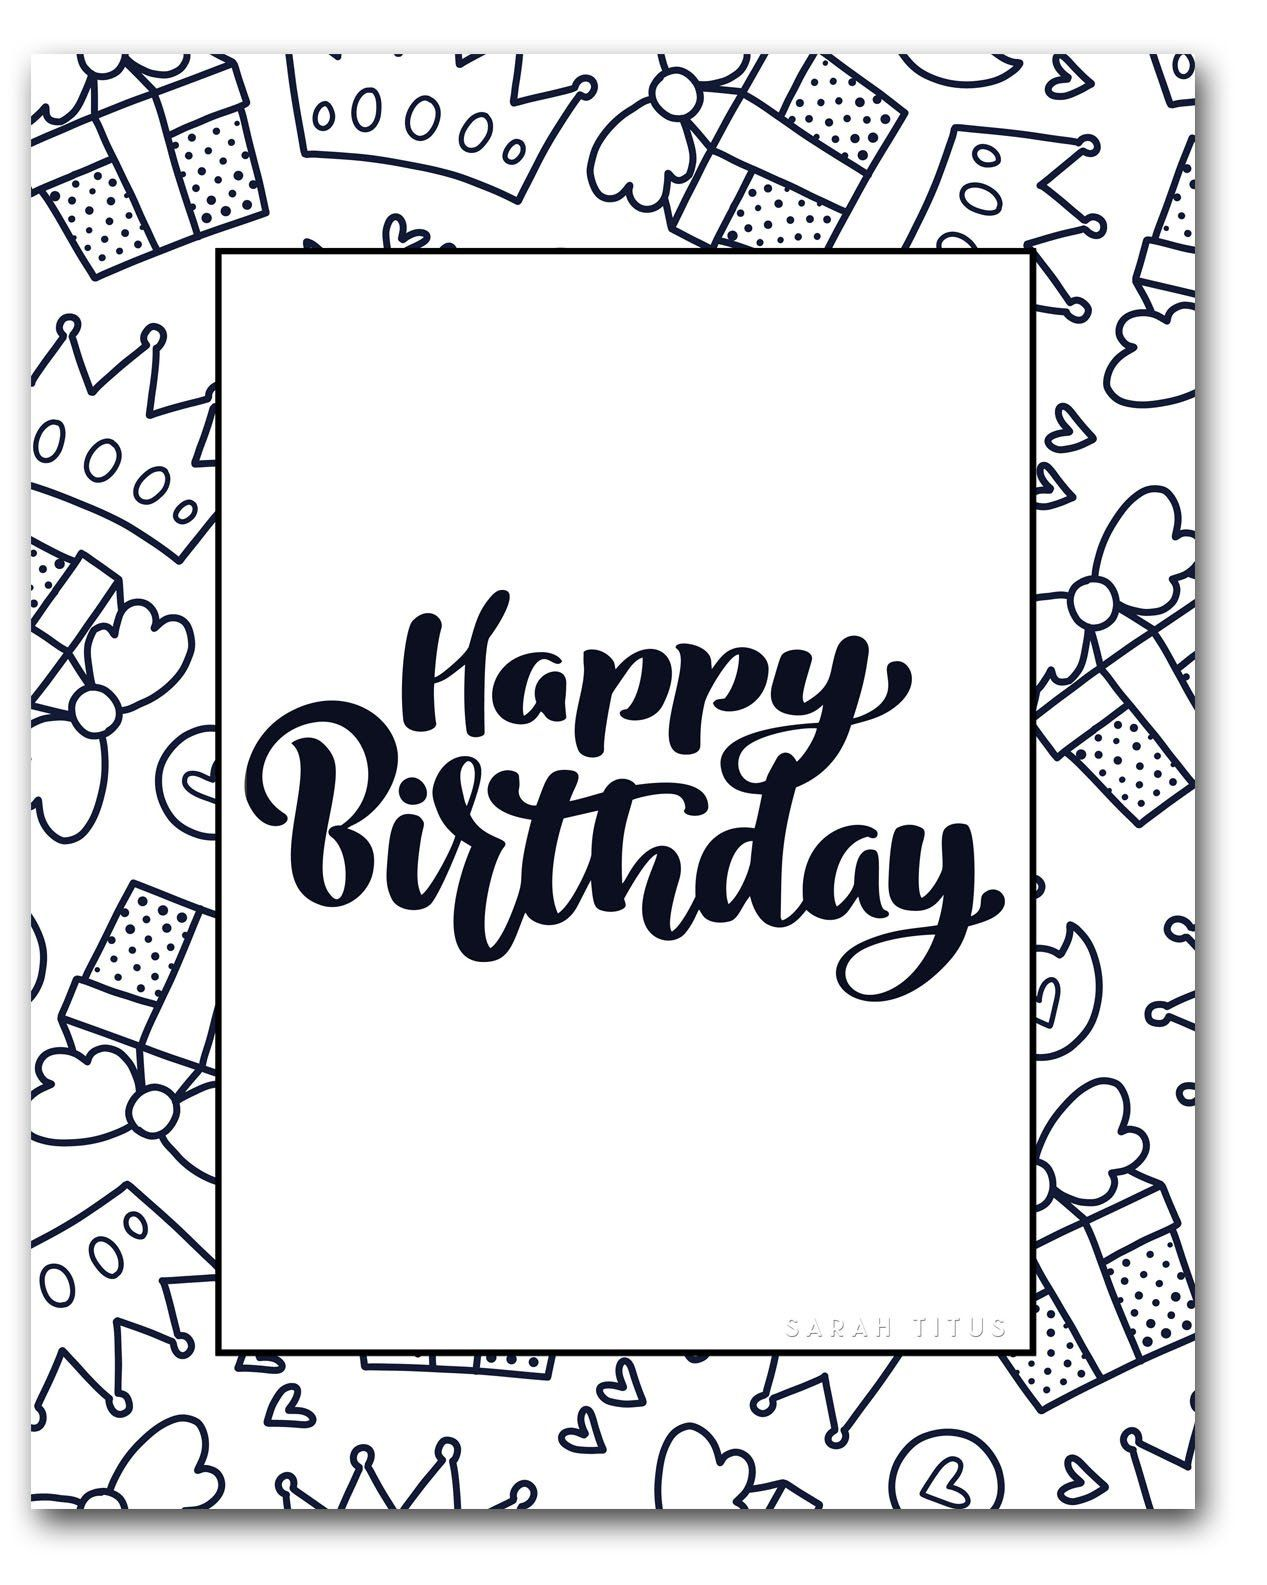 Birthday Coloring Pages Free Coloring Pages Awesome Free Birthday Coloring Pages Birthday Coloring Pages Happy Birthday Coloring Pages Coloring Birthday Cards